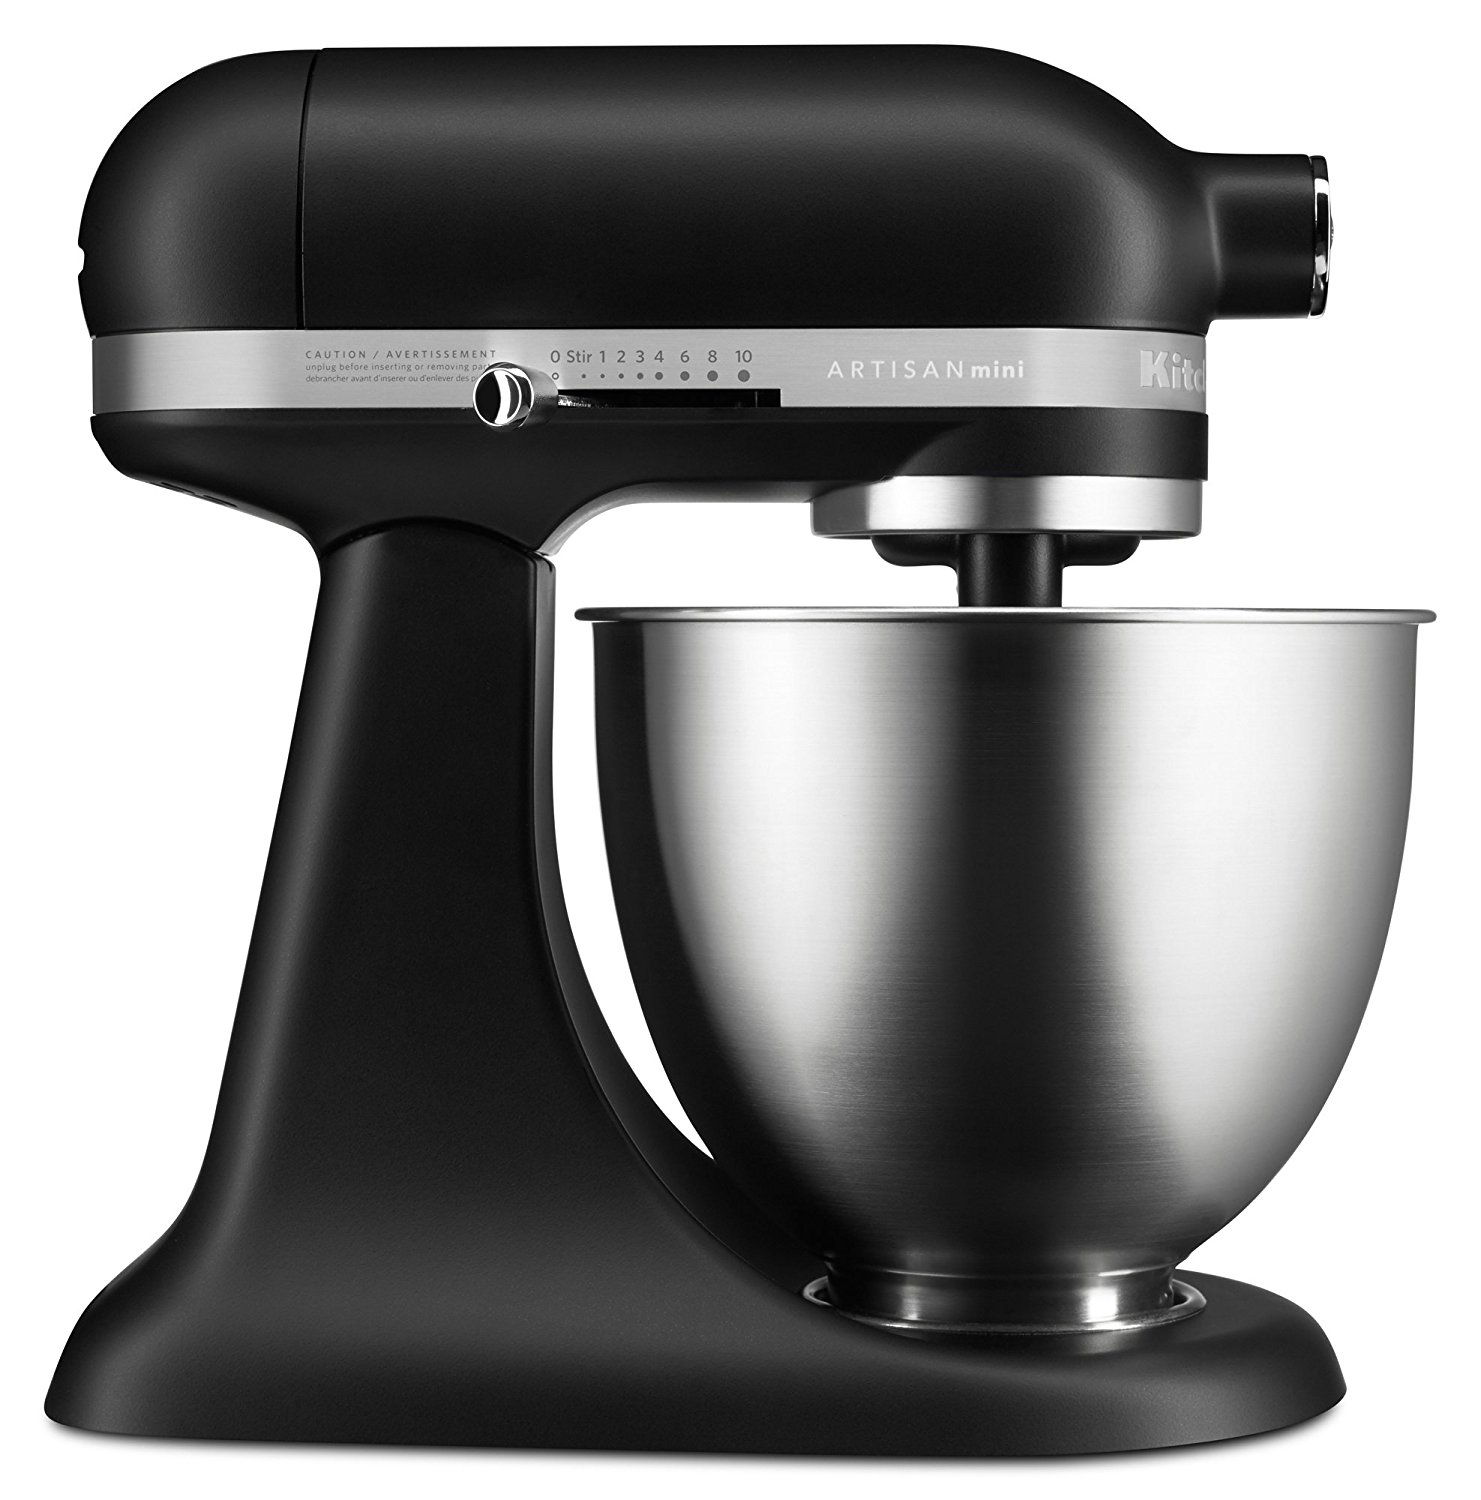 KitchenAid RKSM3311XBM Mini Series Tilt-Head Stand Mixer, 3.5 quart, Matte Black (CERTIFIED REFURBISHED)